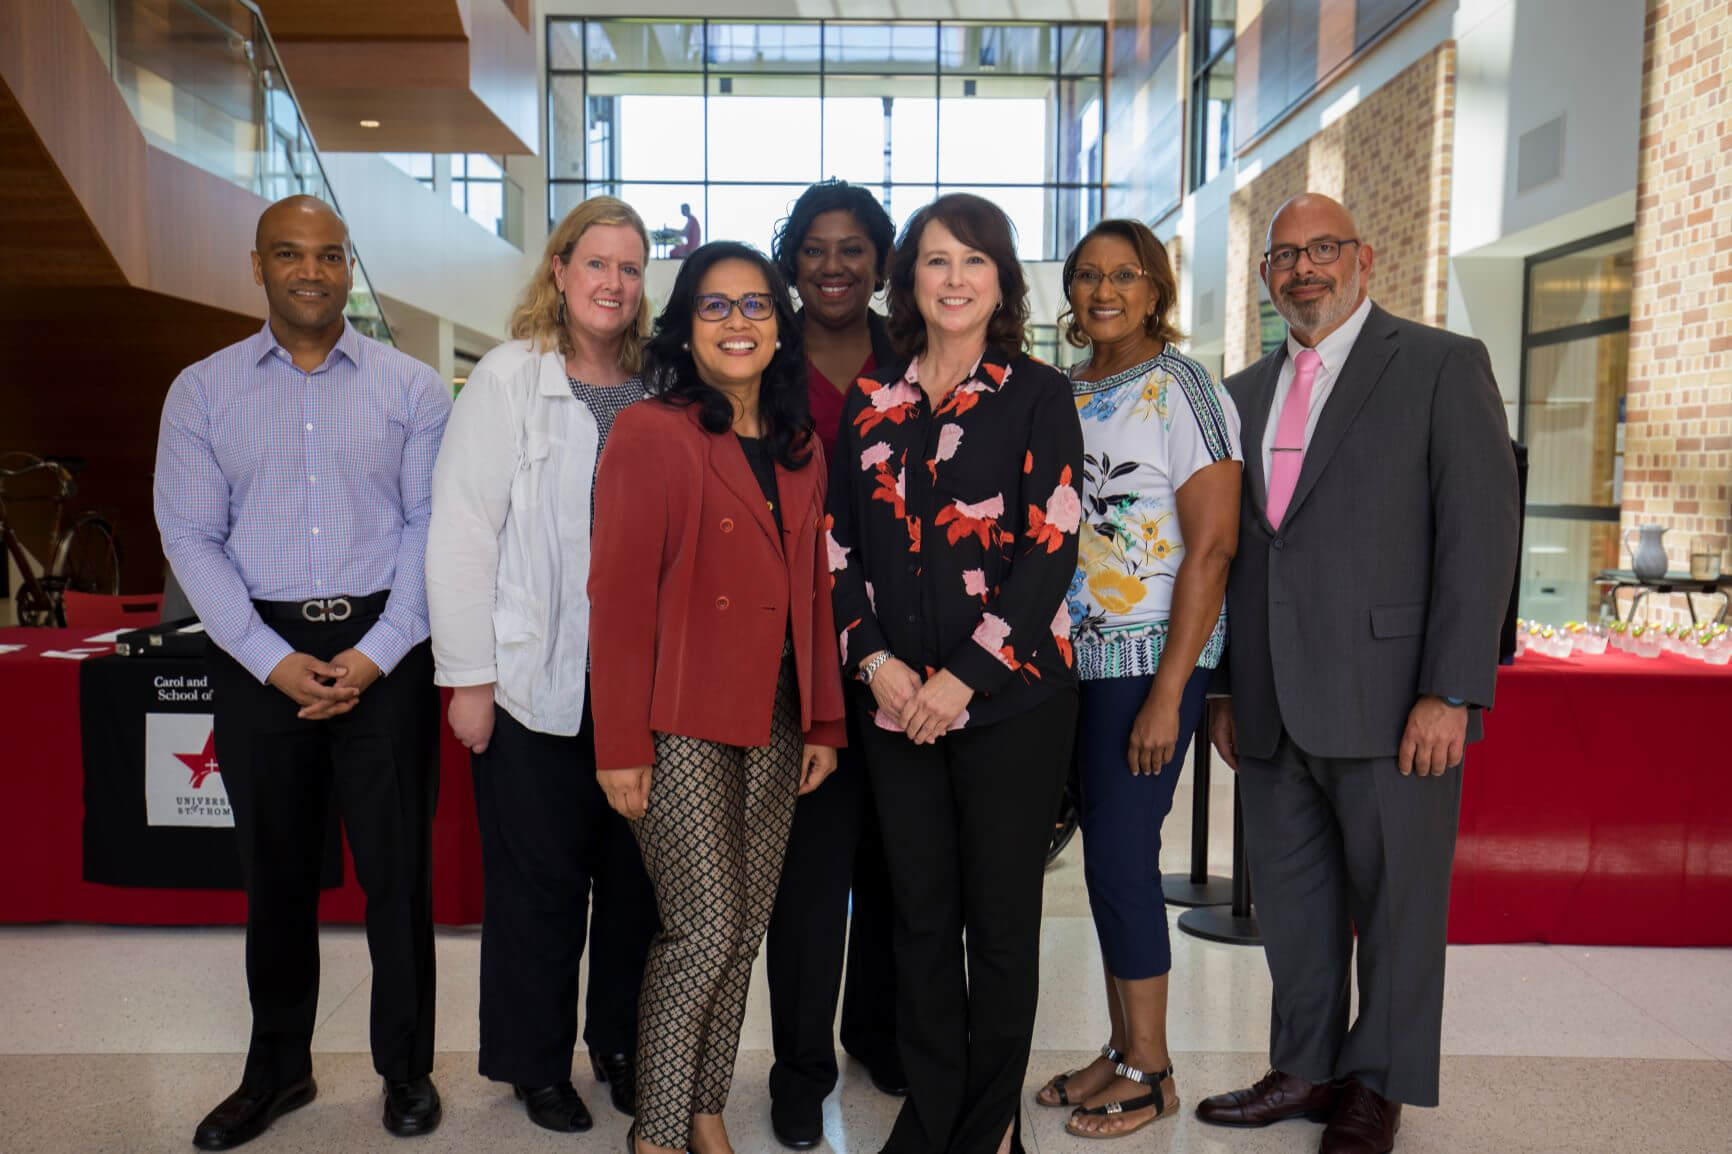 Doctorate of nursing practice students in the inaugural Fall 2018 cohort at the University of St. Thomas. From left: Corey Cowart, Mary Lee Pruzinsky, Maribel Marquez-Bhojani, Lori Timmons, Dell Roach, Brenda Charles and Gregory Bearinger. Not pictured: James Waters. (Photo courtesy of University of St. Thomas)